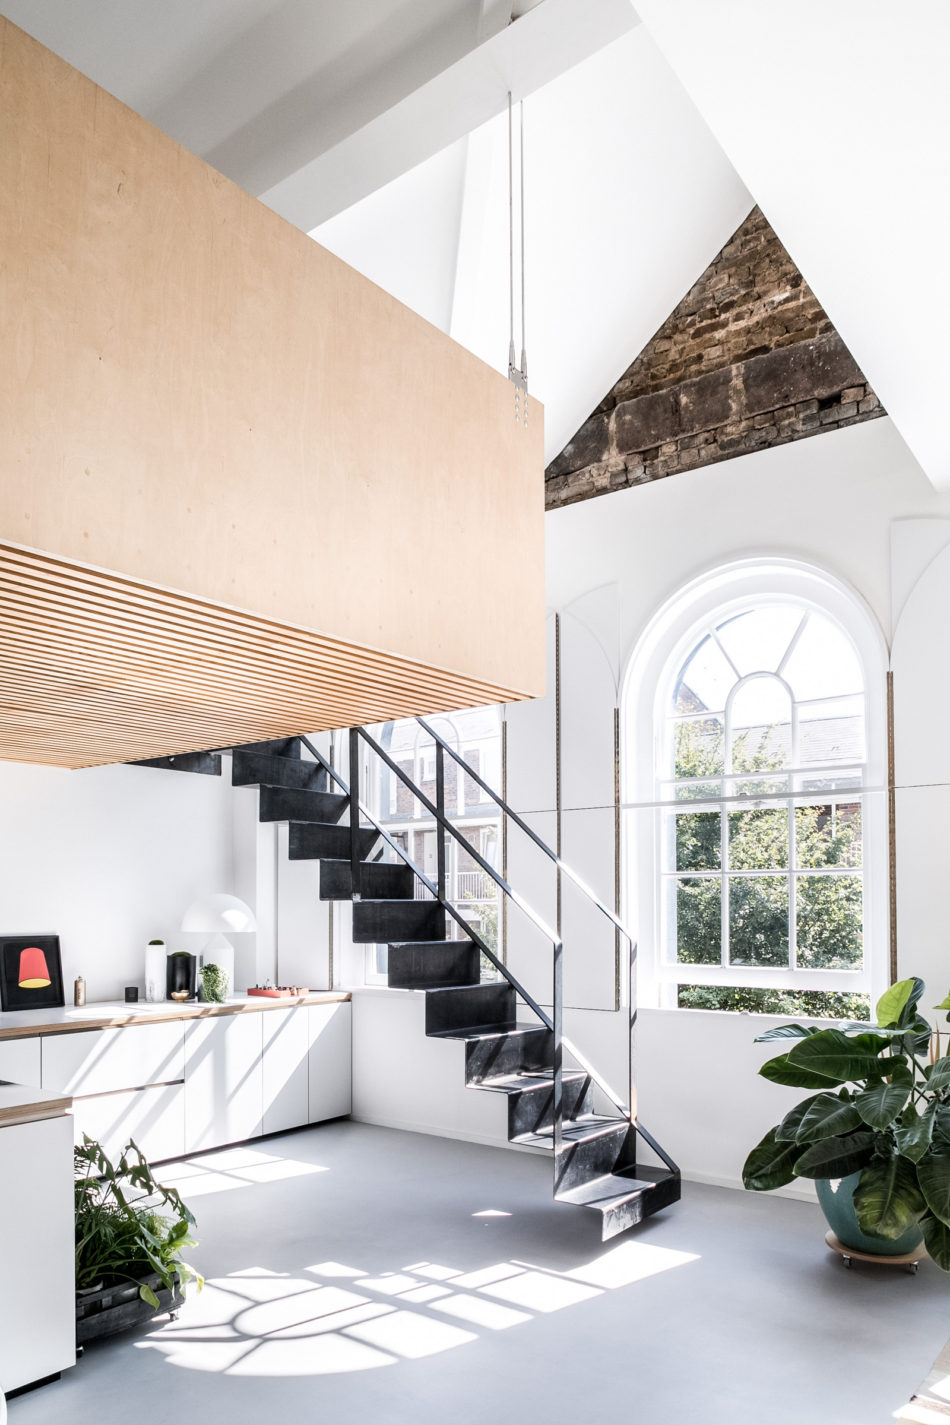 How to convert a period home – five architecture studios